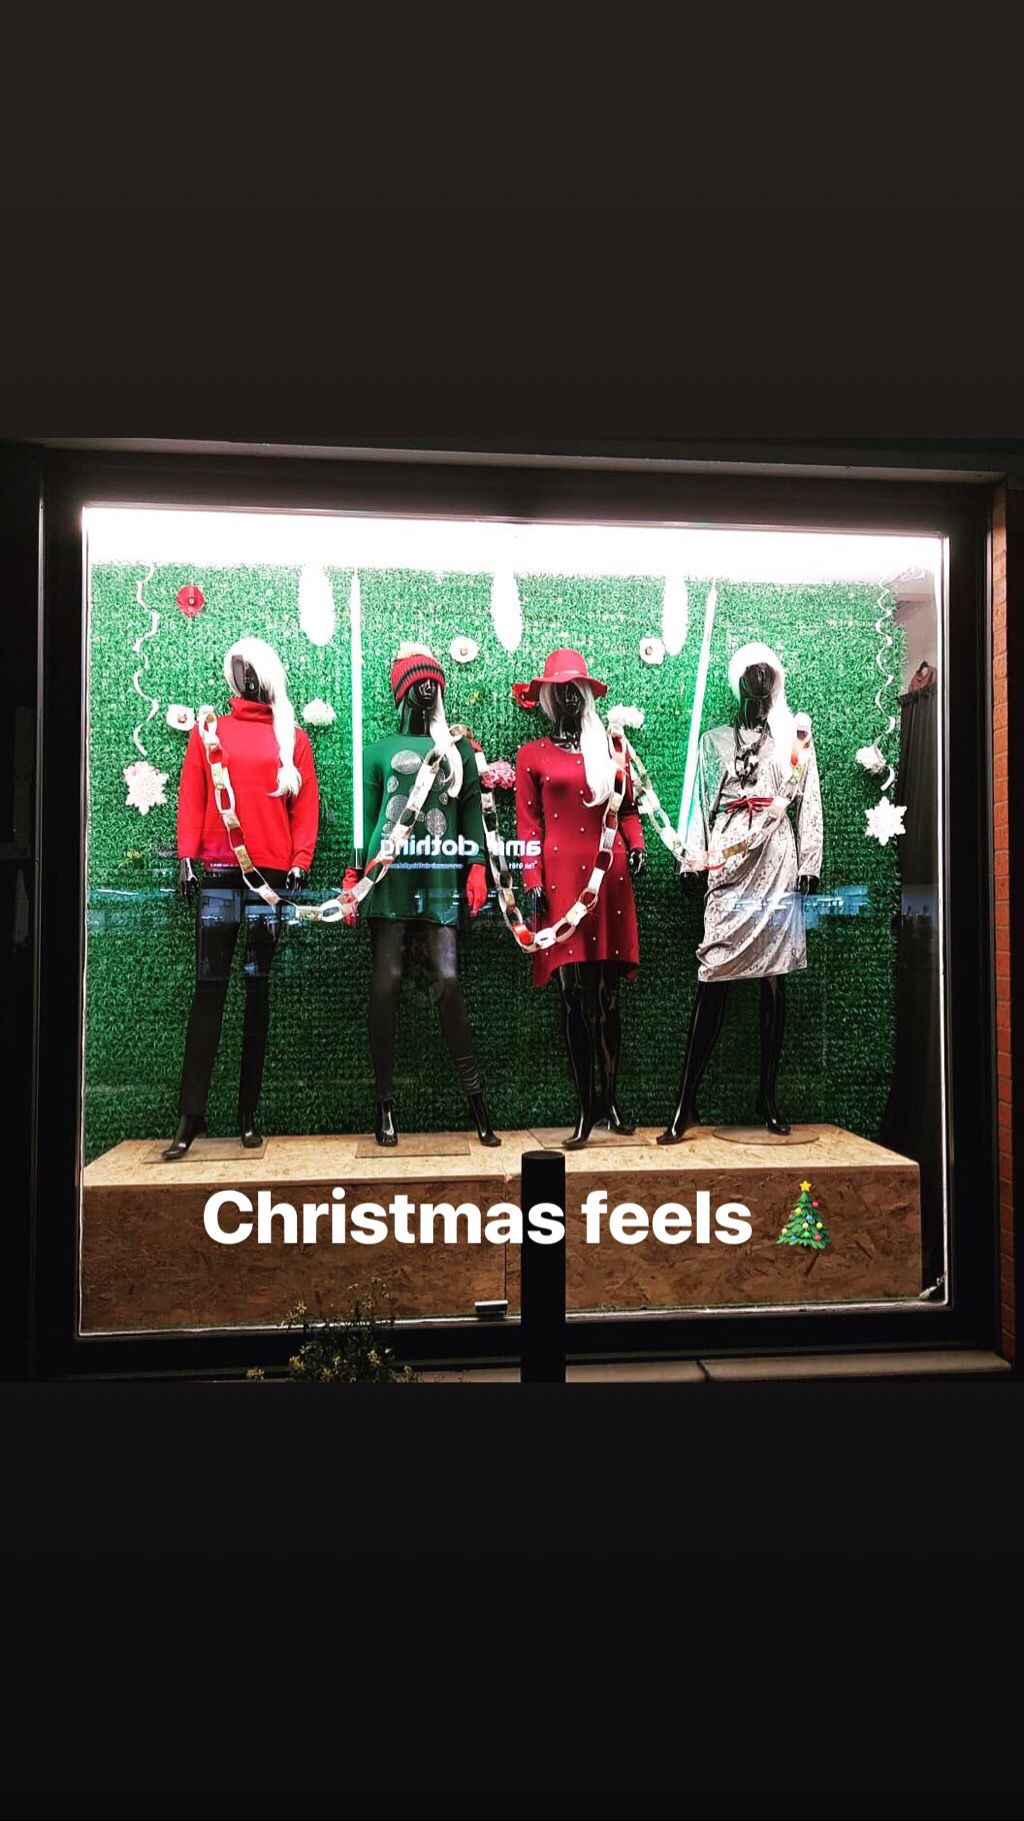 Christmas windows done 🎄🌟  check out some of our party wear online www.zoomfashionwholesale.com . #zoom #zoomfashion #wholesale #fashionwholesale #christmas #christmaswindow #windowdisplay #display #vm #visualmerchandising #paperchain #love #awesome #outfit #outfitpost #womenswear #fashion #style #onesize #red #green #christmasfeeling #christmasfeels